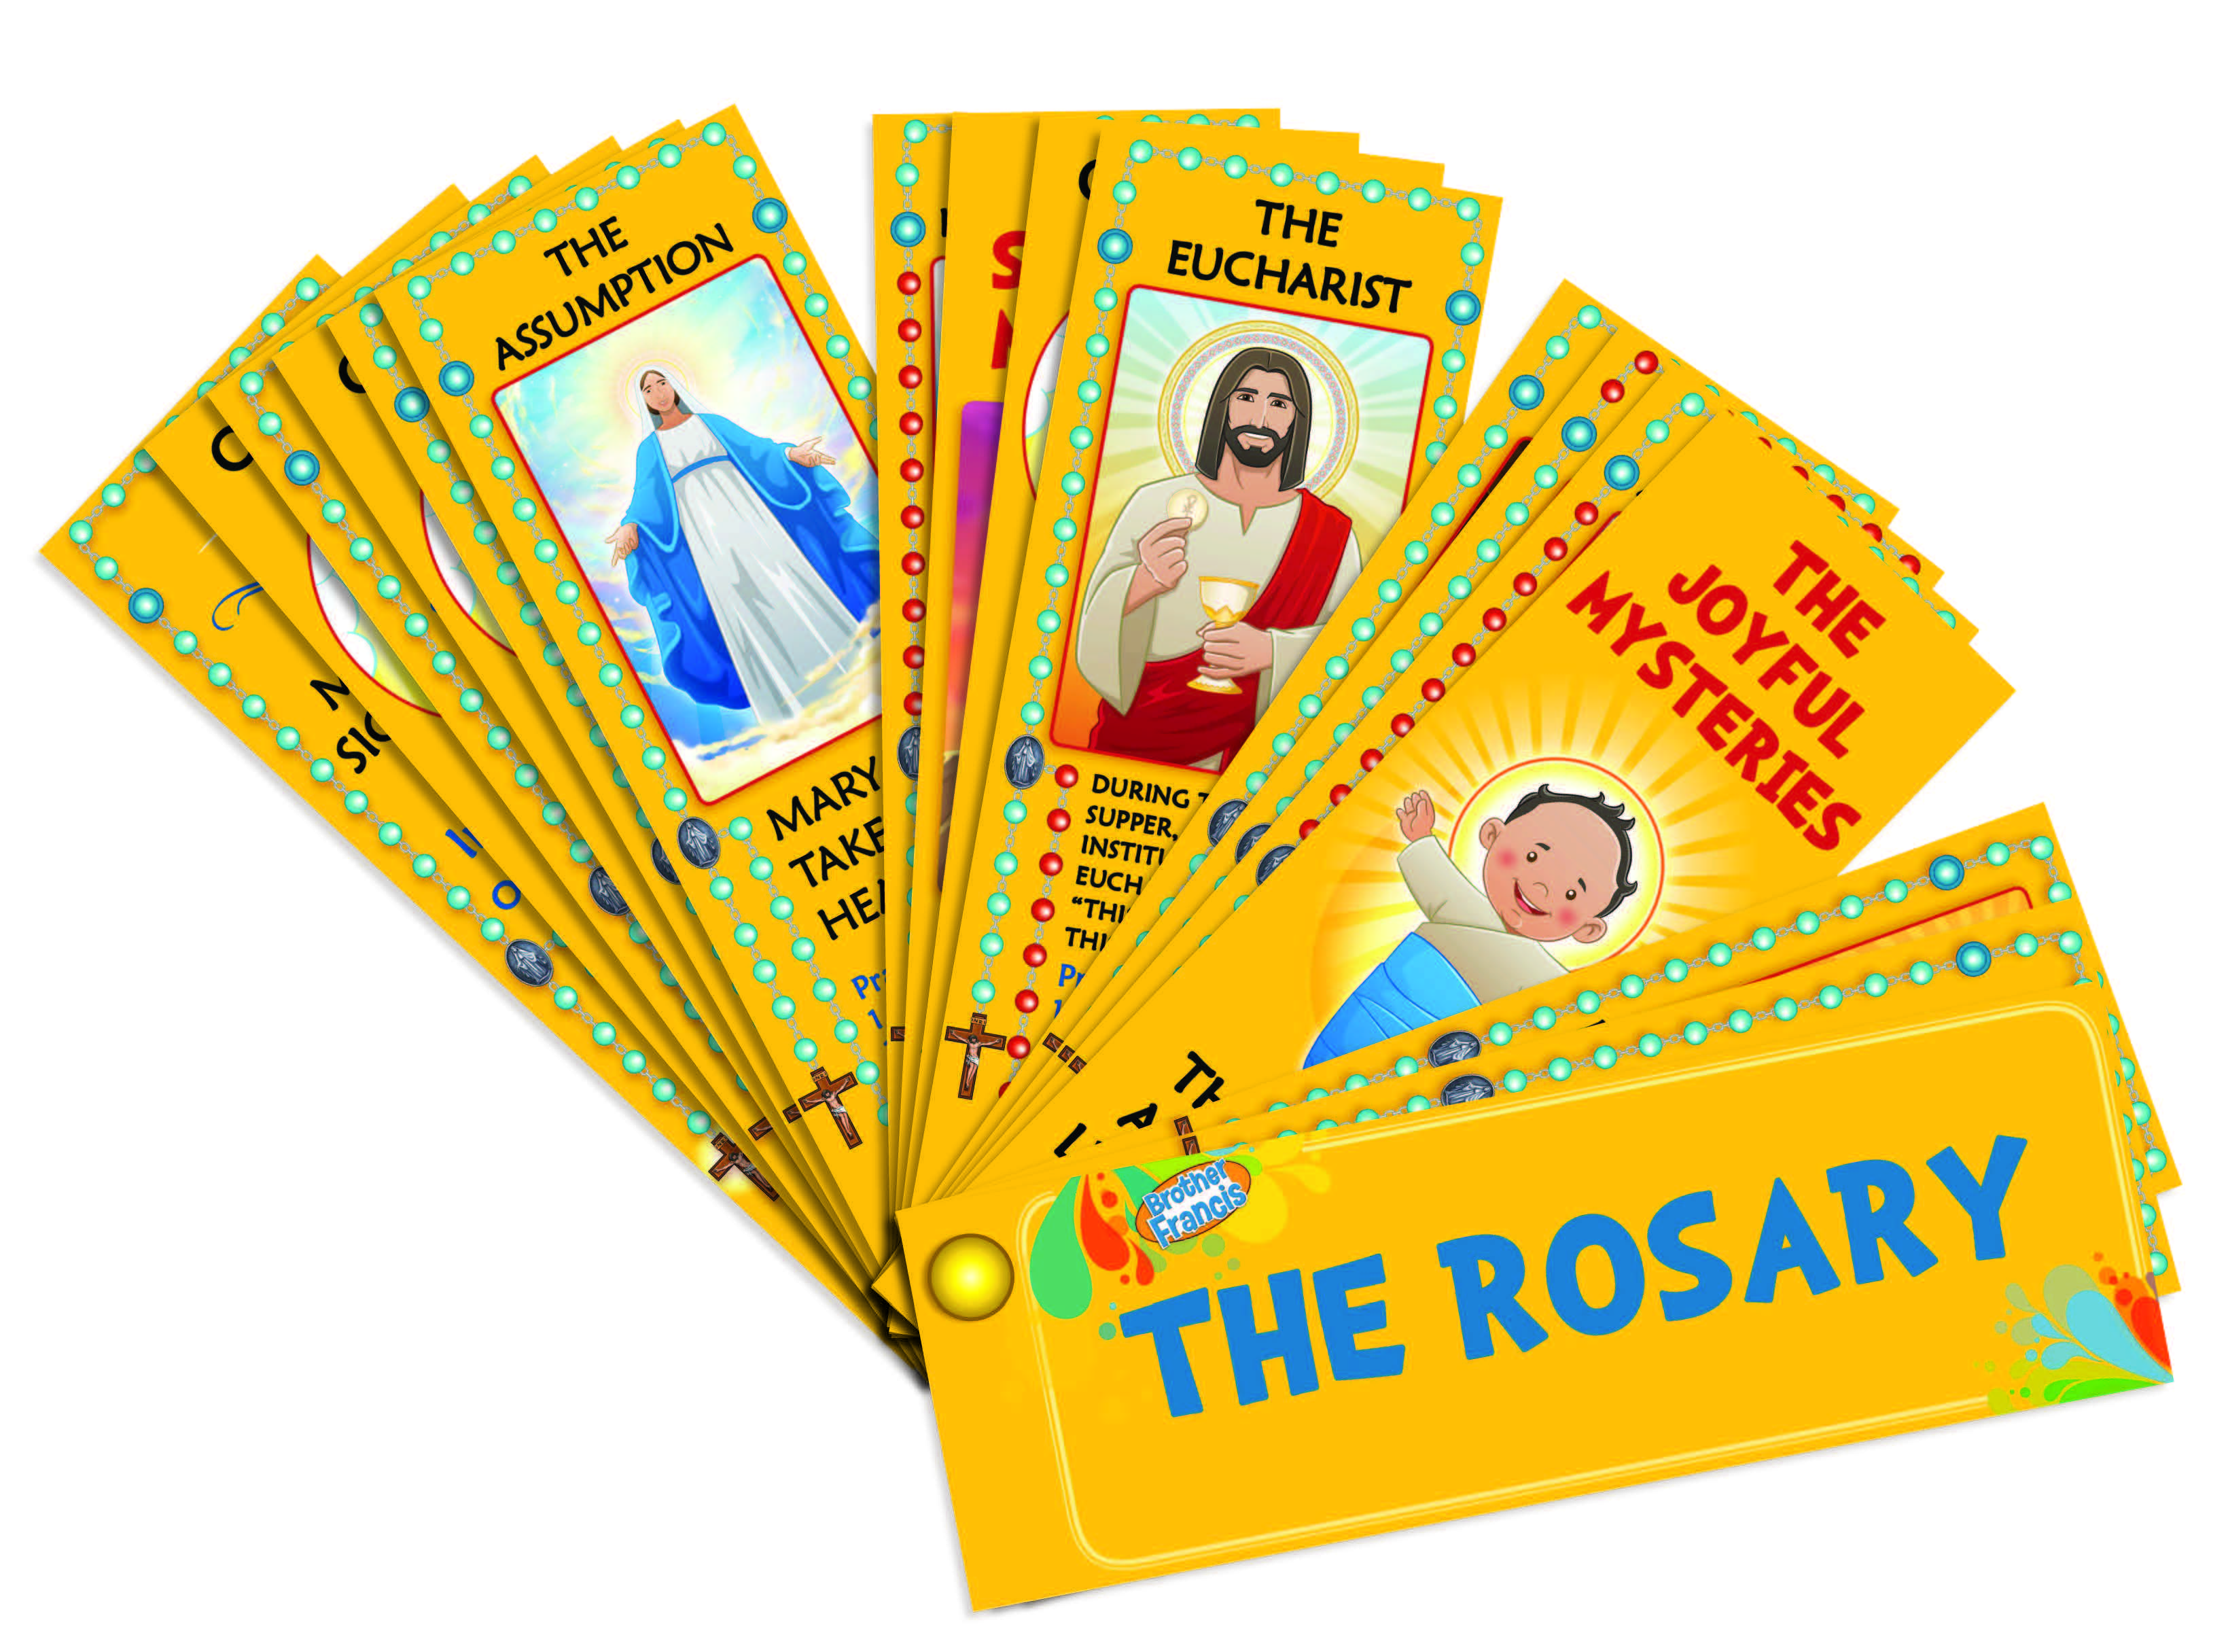 The Catholic Rosary Fan